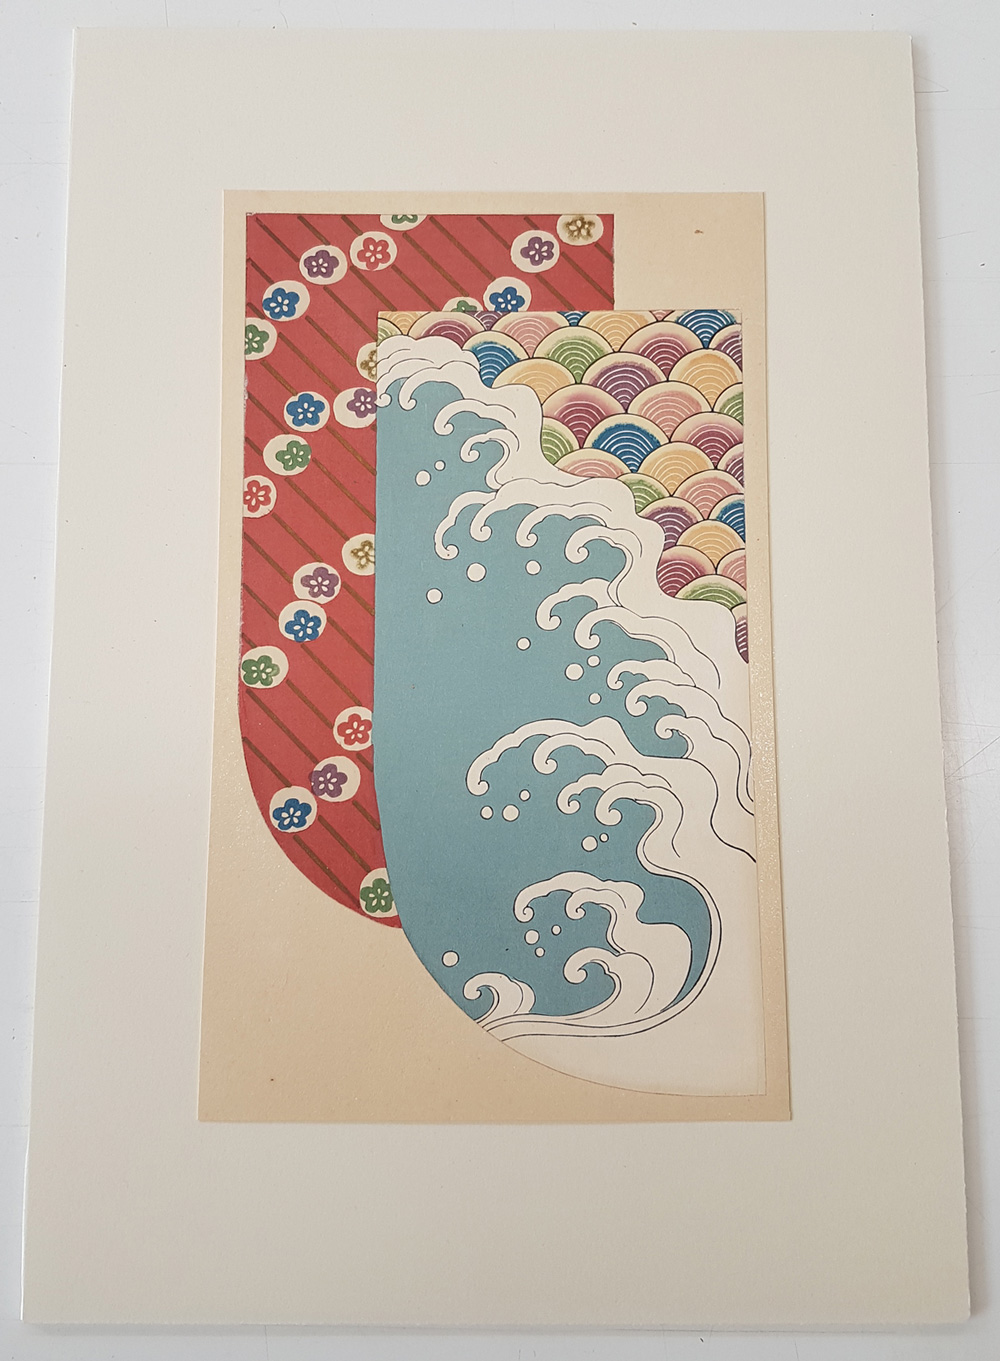 Image of two kimono designs one of small flower motifs the other of the sea and crashing waves.